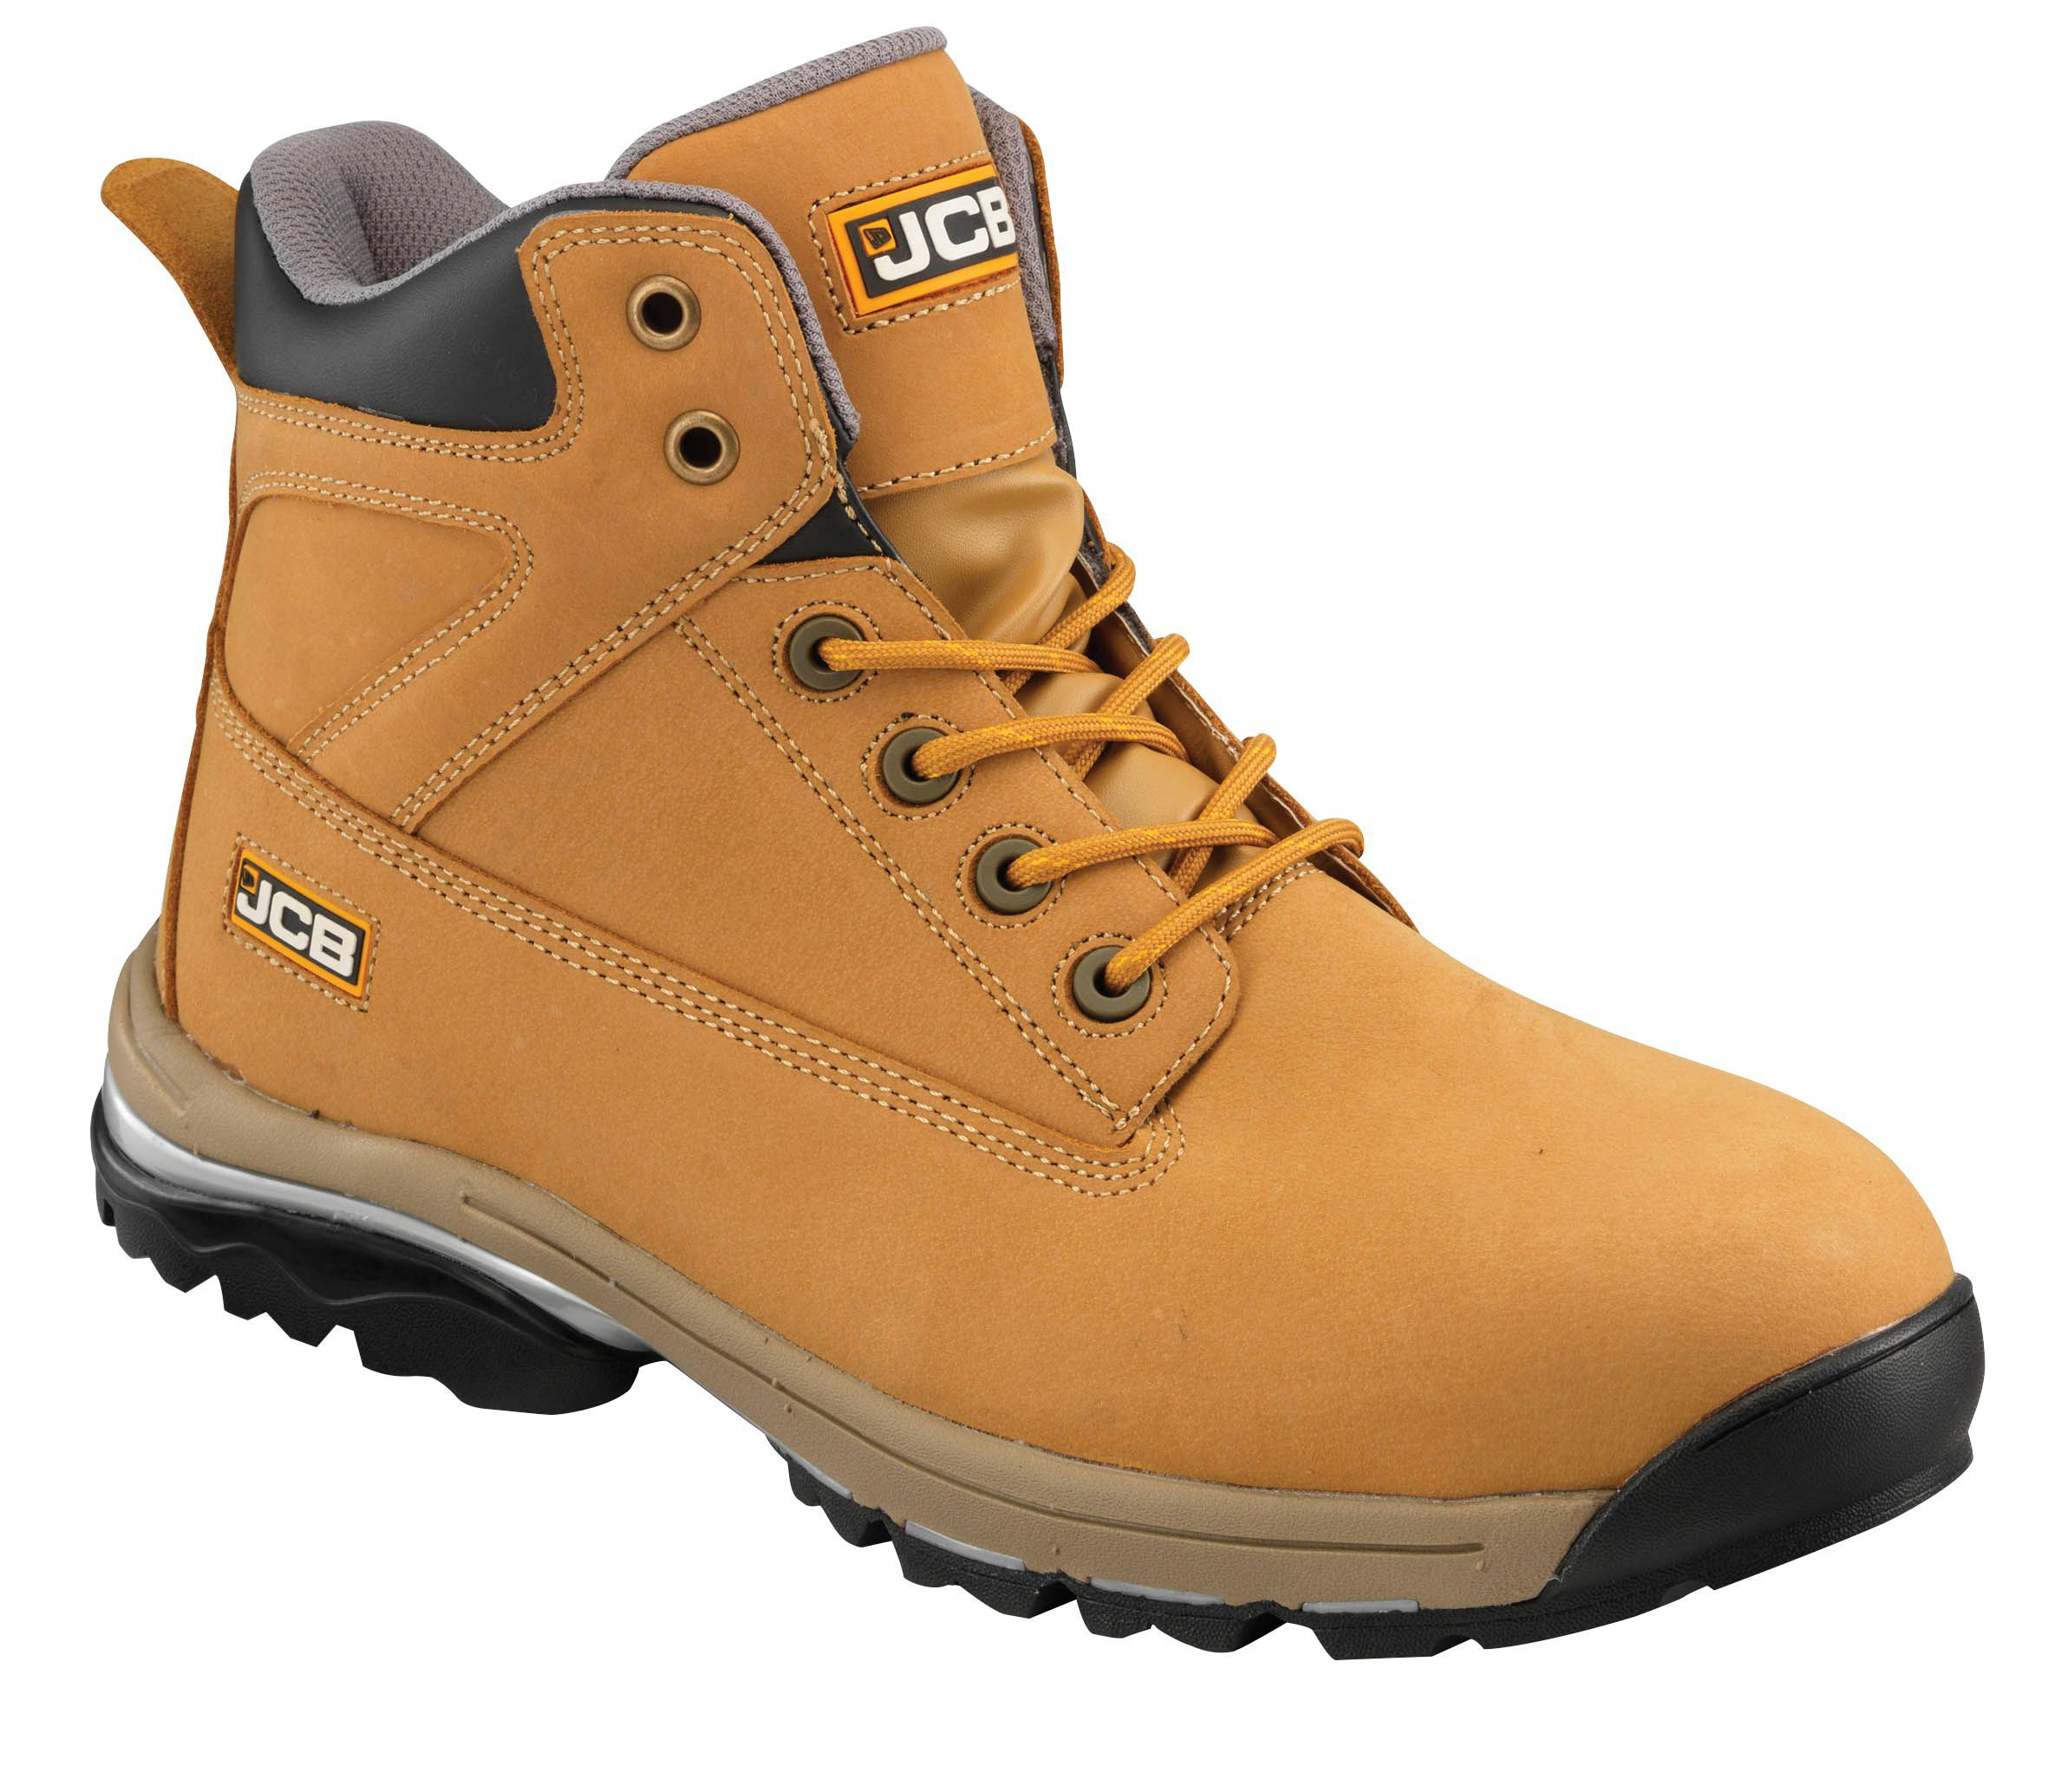 Jcb Honey Workmax Boots, Size 12